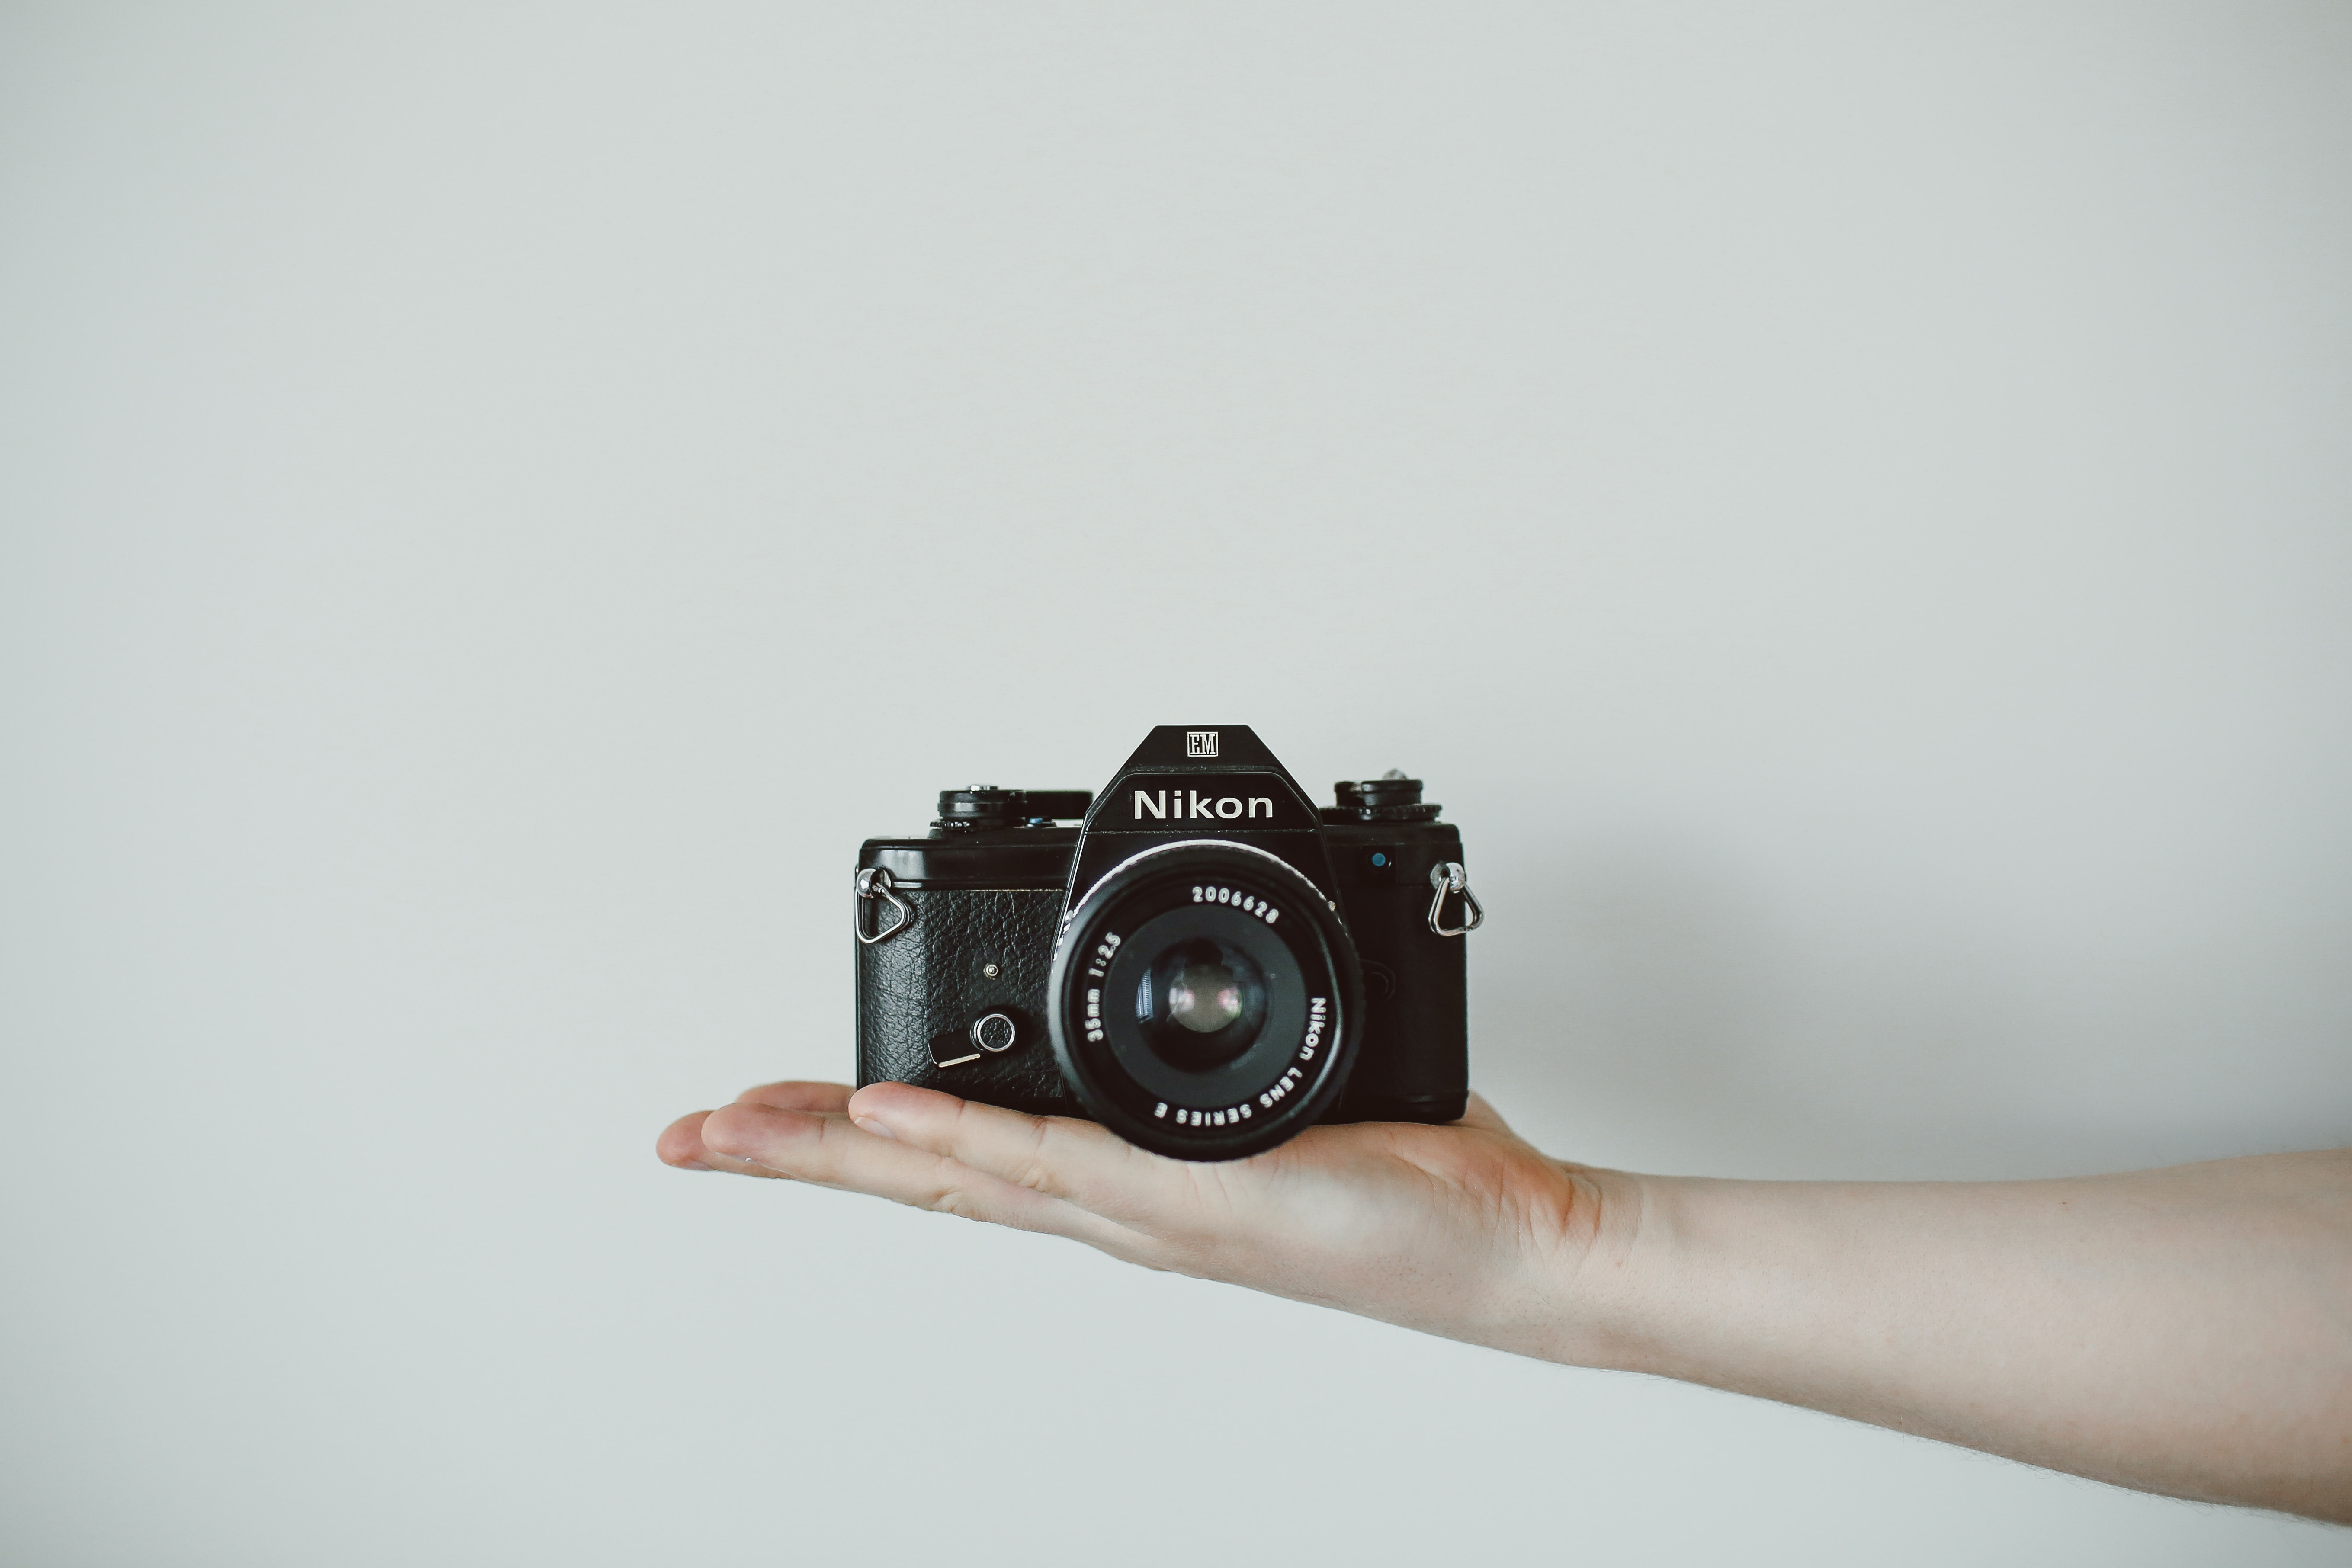 A person holding a Nikon camera in the palm of their hand against a white wall